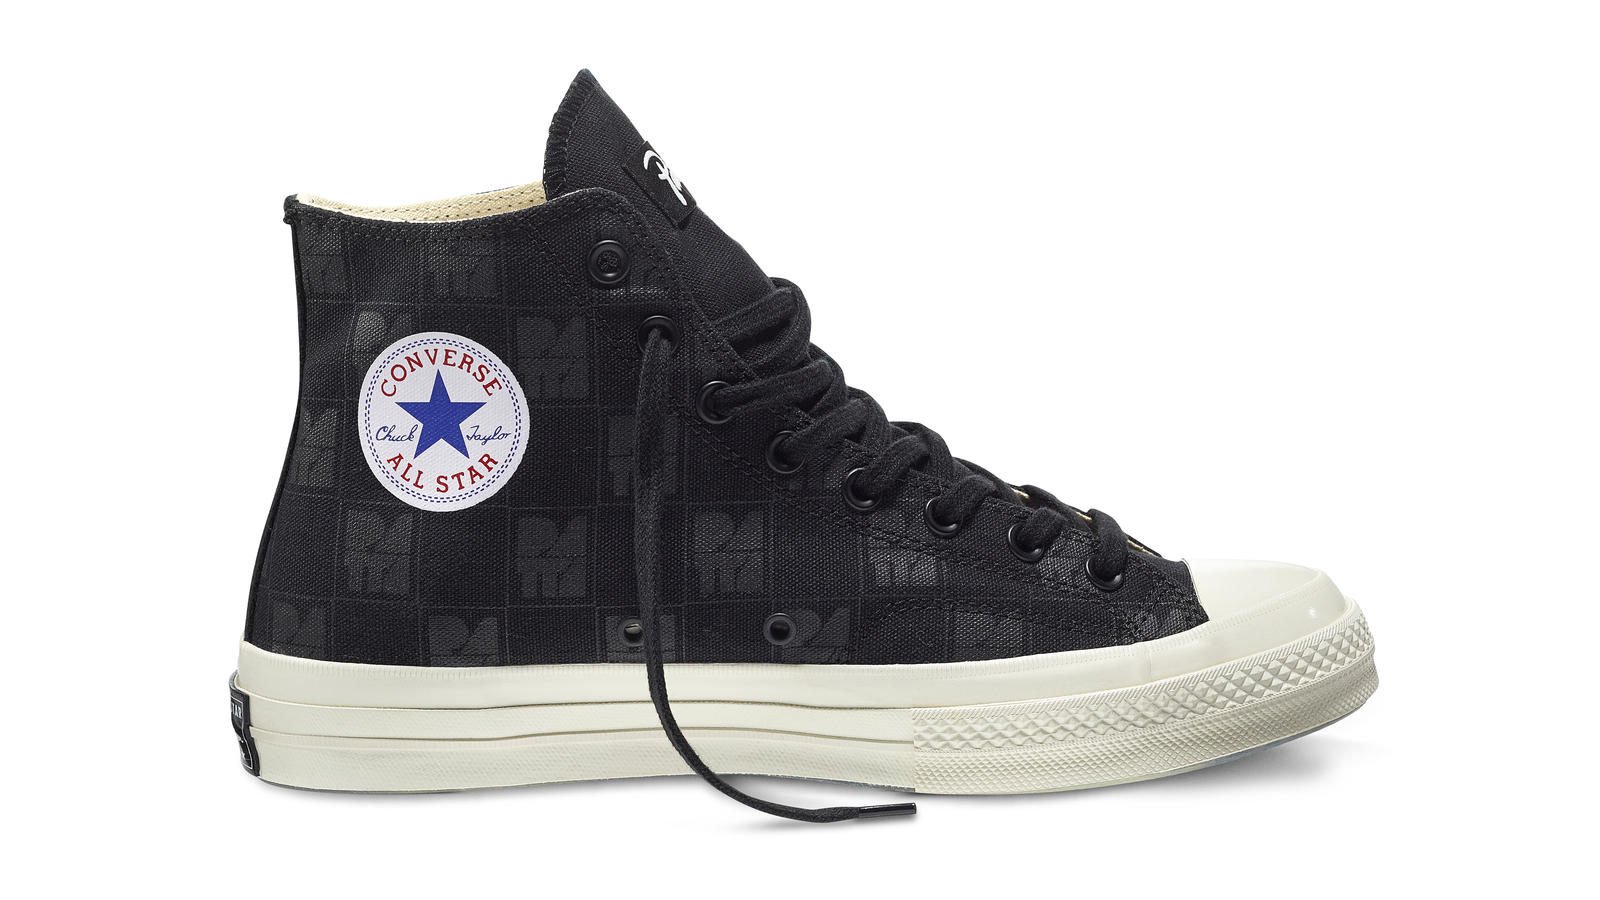 Converse All Star Ct70 Patta10 Black Black Original